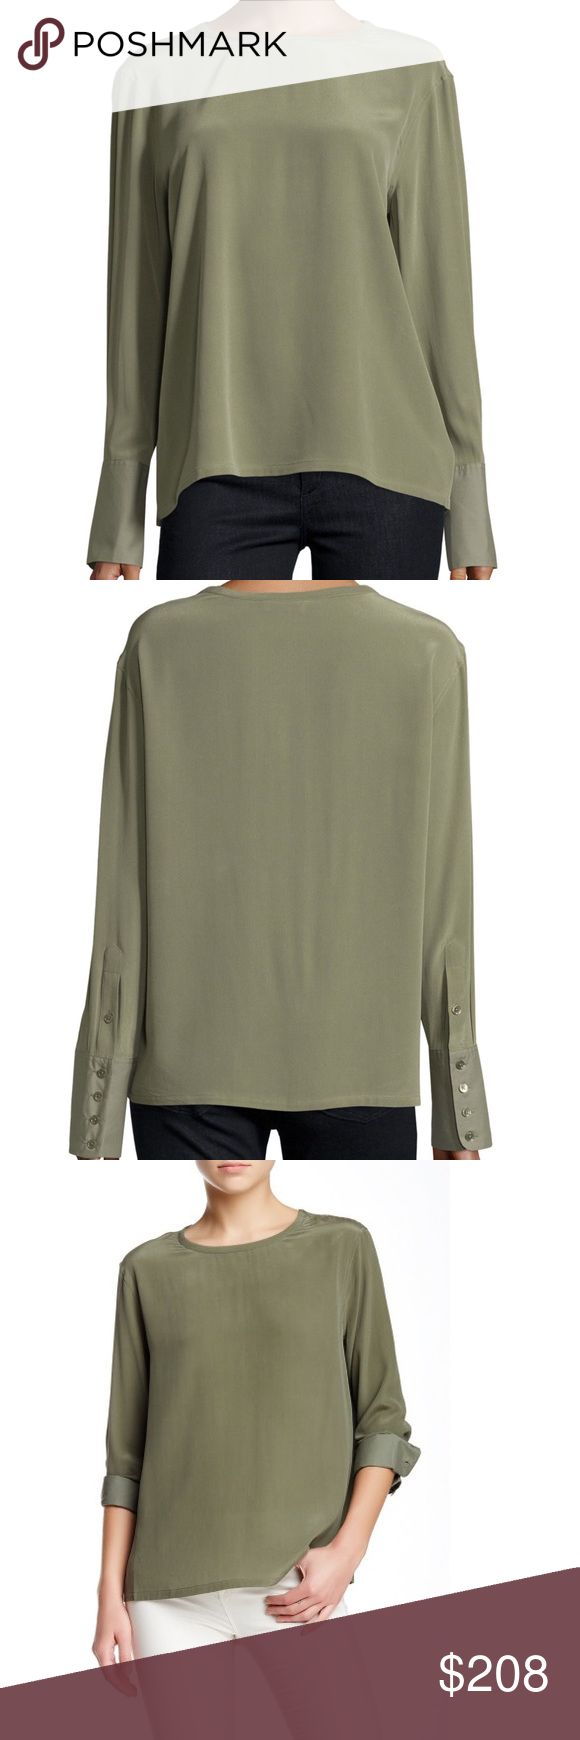 "🆕 EQUIPMENT oversized Liam silk blouse shirt BRAND NEW: Equipment olive green oversized LIAM silk blouse.   An effortless chic wardrobe staple. Long sleeve shirt is cut with oversized fit and features contrasting, extra long cotton sleeve cuffs. 100% silk ~26"" measured from shoulder Equipment Tops Blouses"